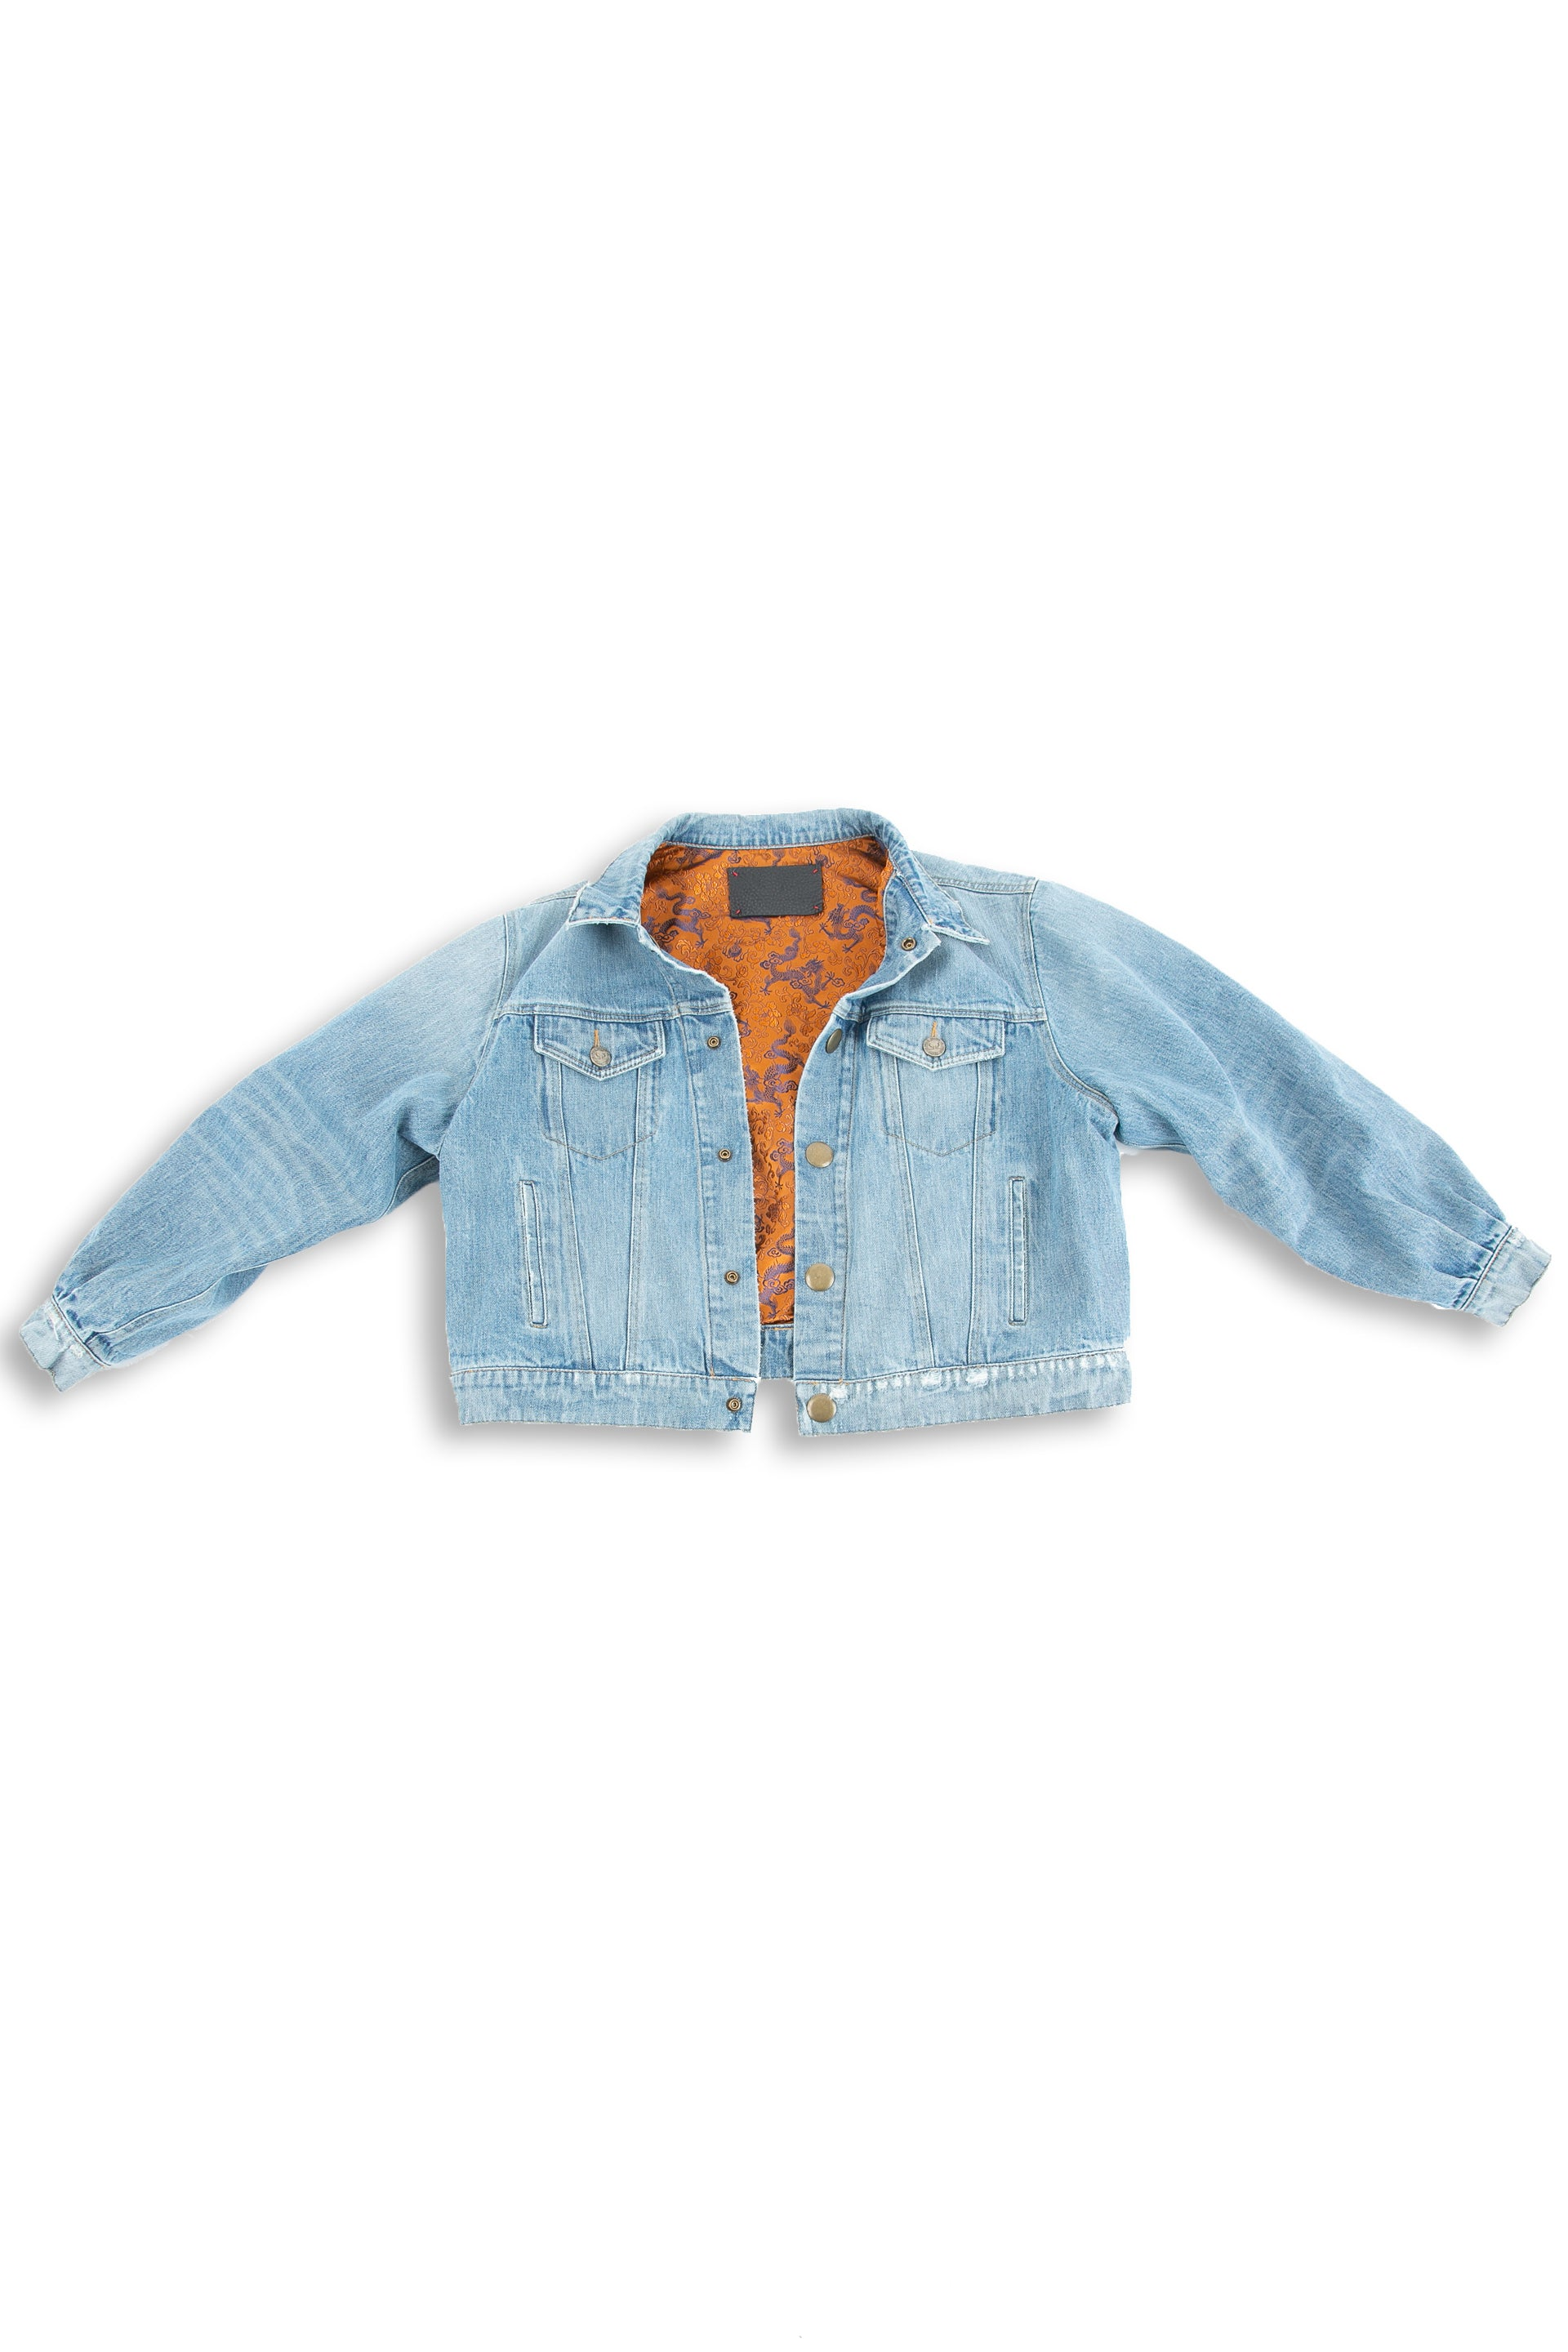 Front of Dynasty Reversible Denim jacket